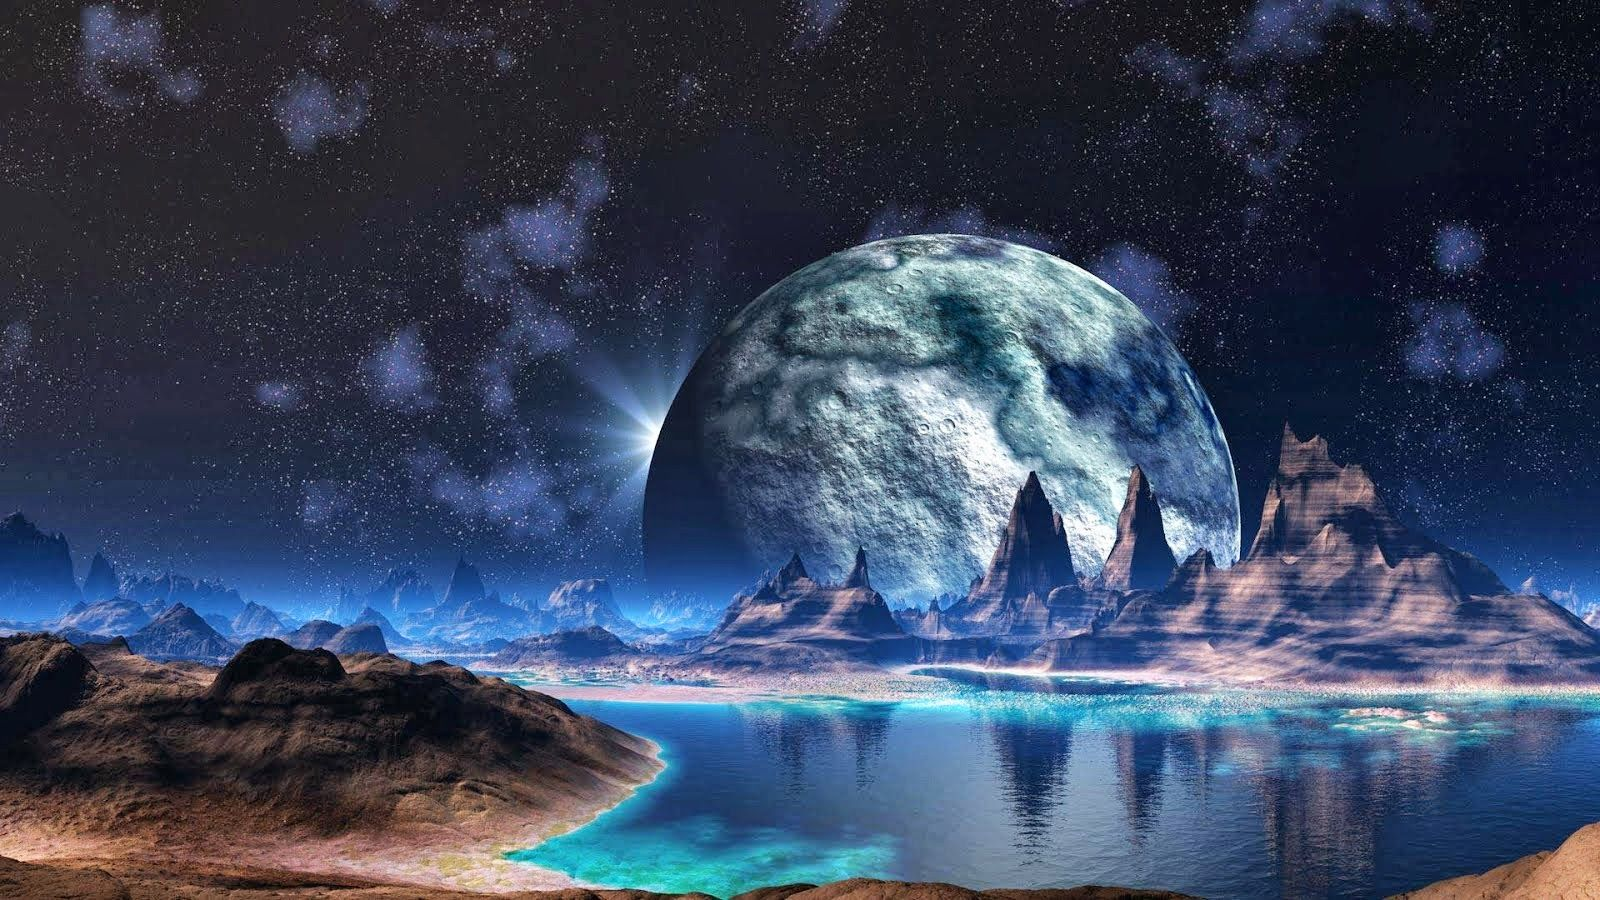 1080p Backgrounds Free Sci Fi Wallpaper Space Desktop Backgrounds Cool Desktop Backgrounds